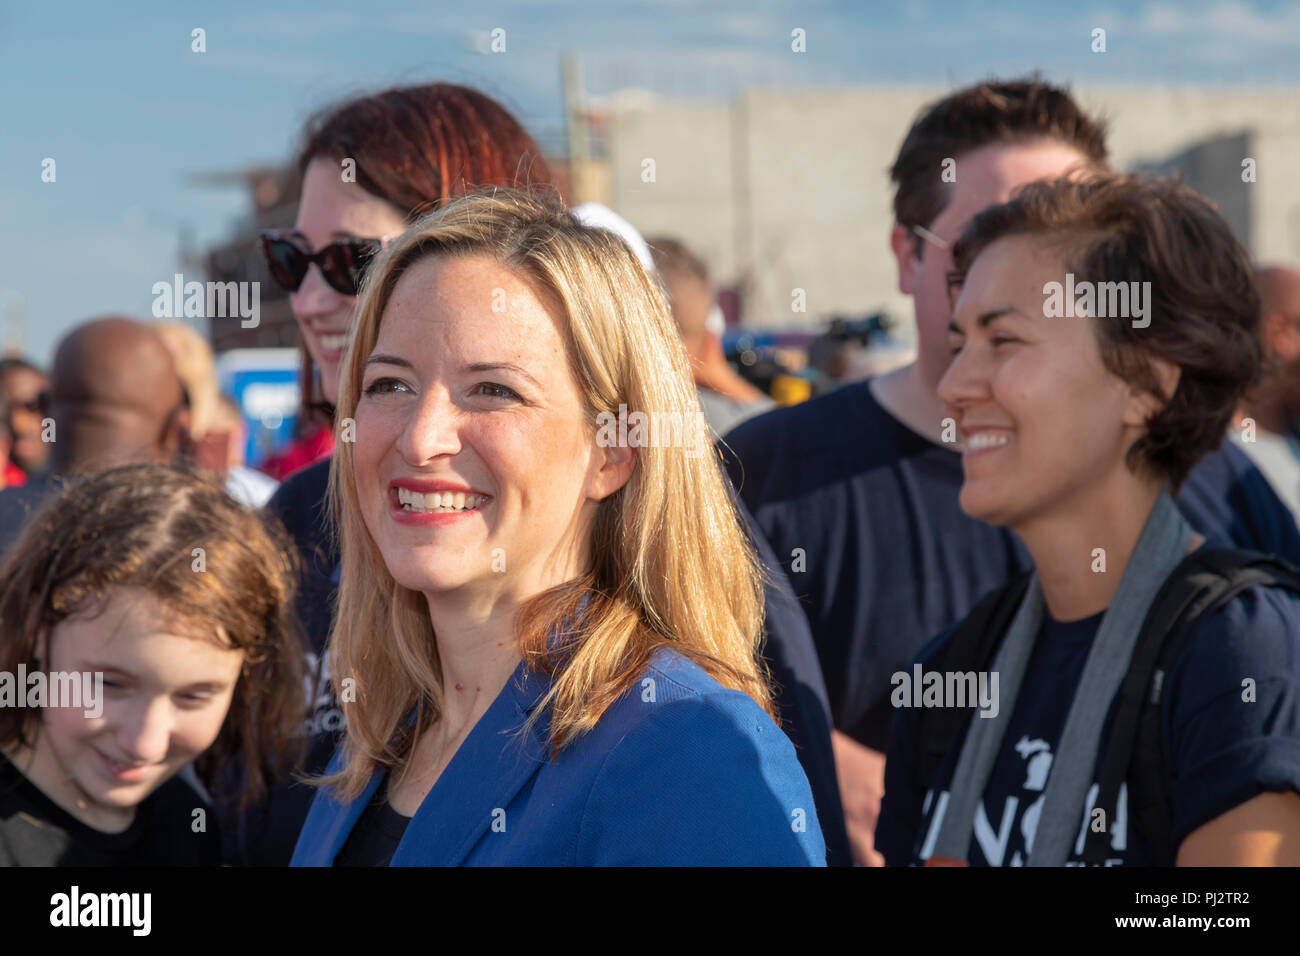 Detroit, Michigan - 3 September 2018 - Jocelyn Benson, the Democratic candidate for Michigan Secretary of State, campaigns at Detroit's Labor Day para Stock Photo